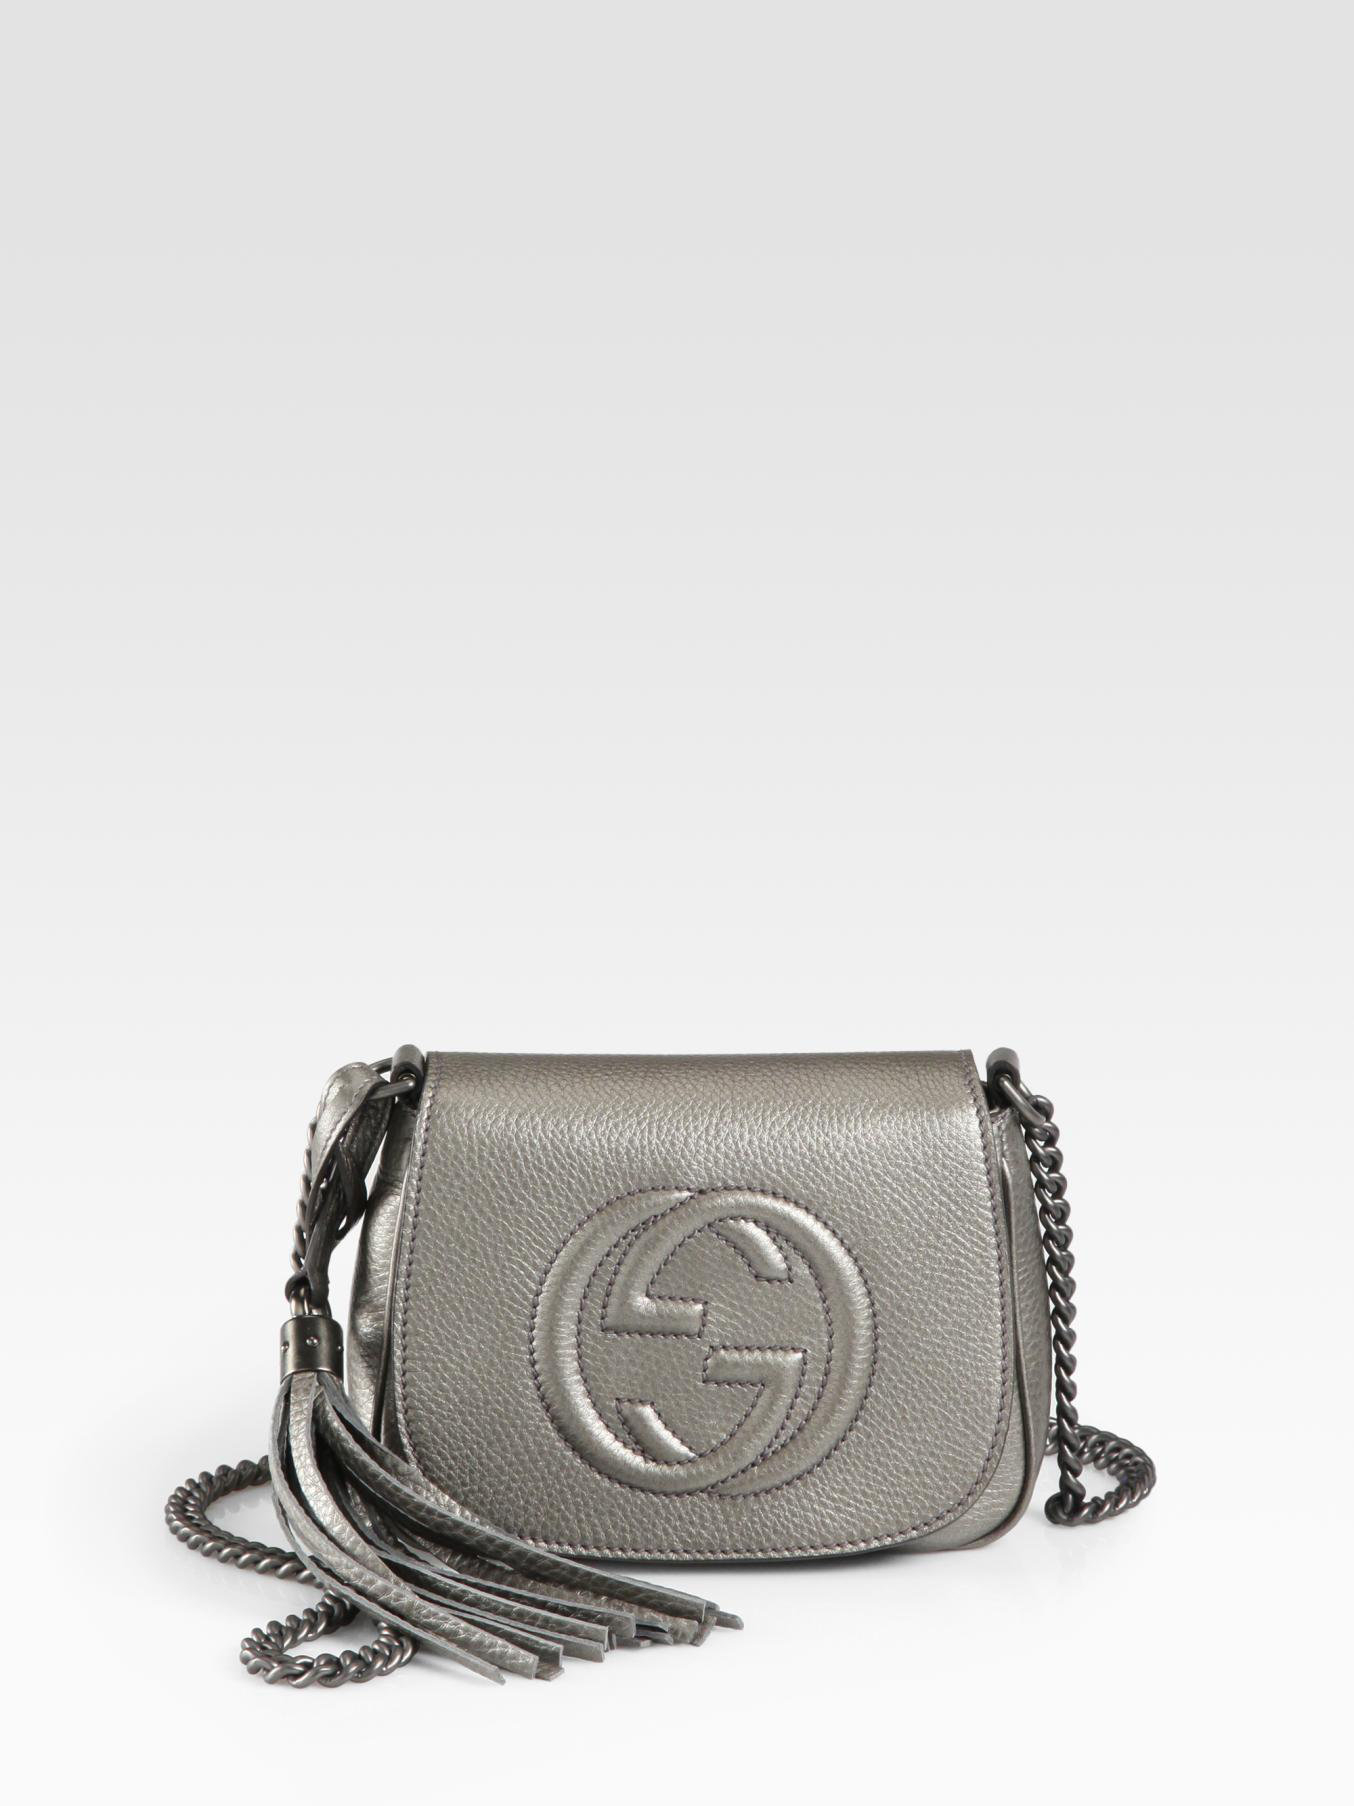 Lyst Gucci Soho Metallic Leather Chain Shoulder Bag In